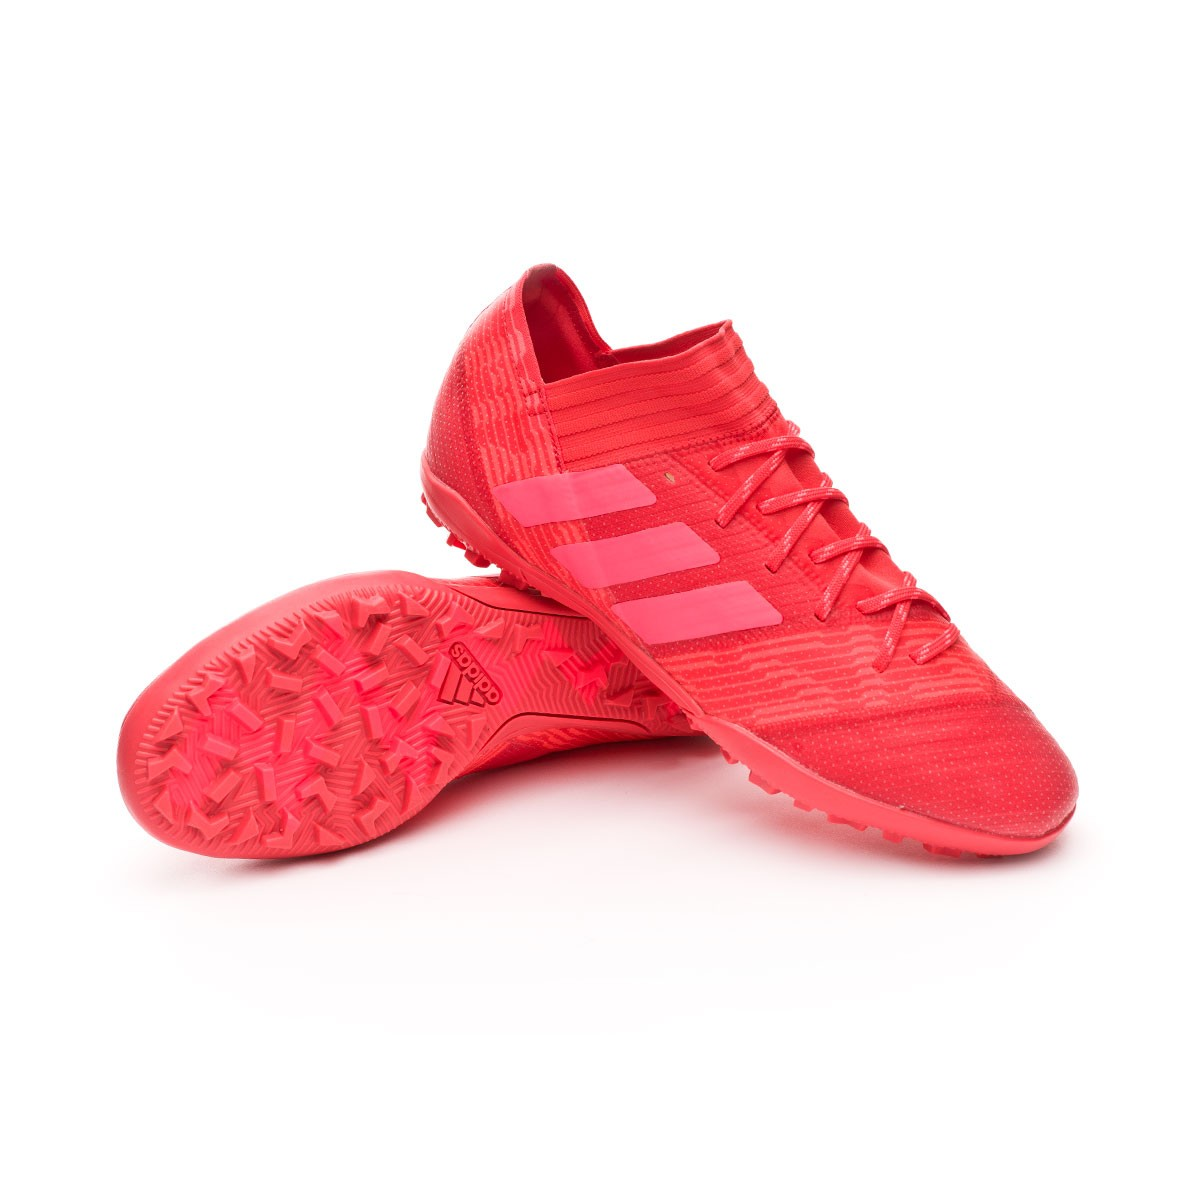 more photos 7c734 f2f21 adidas Nemeziz Tango 17.3 Turf Football Boot